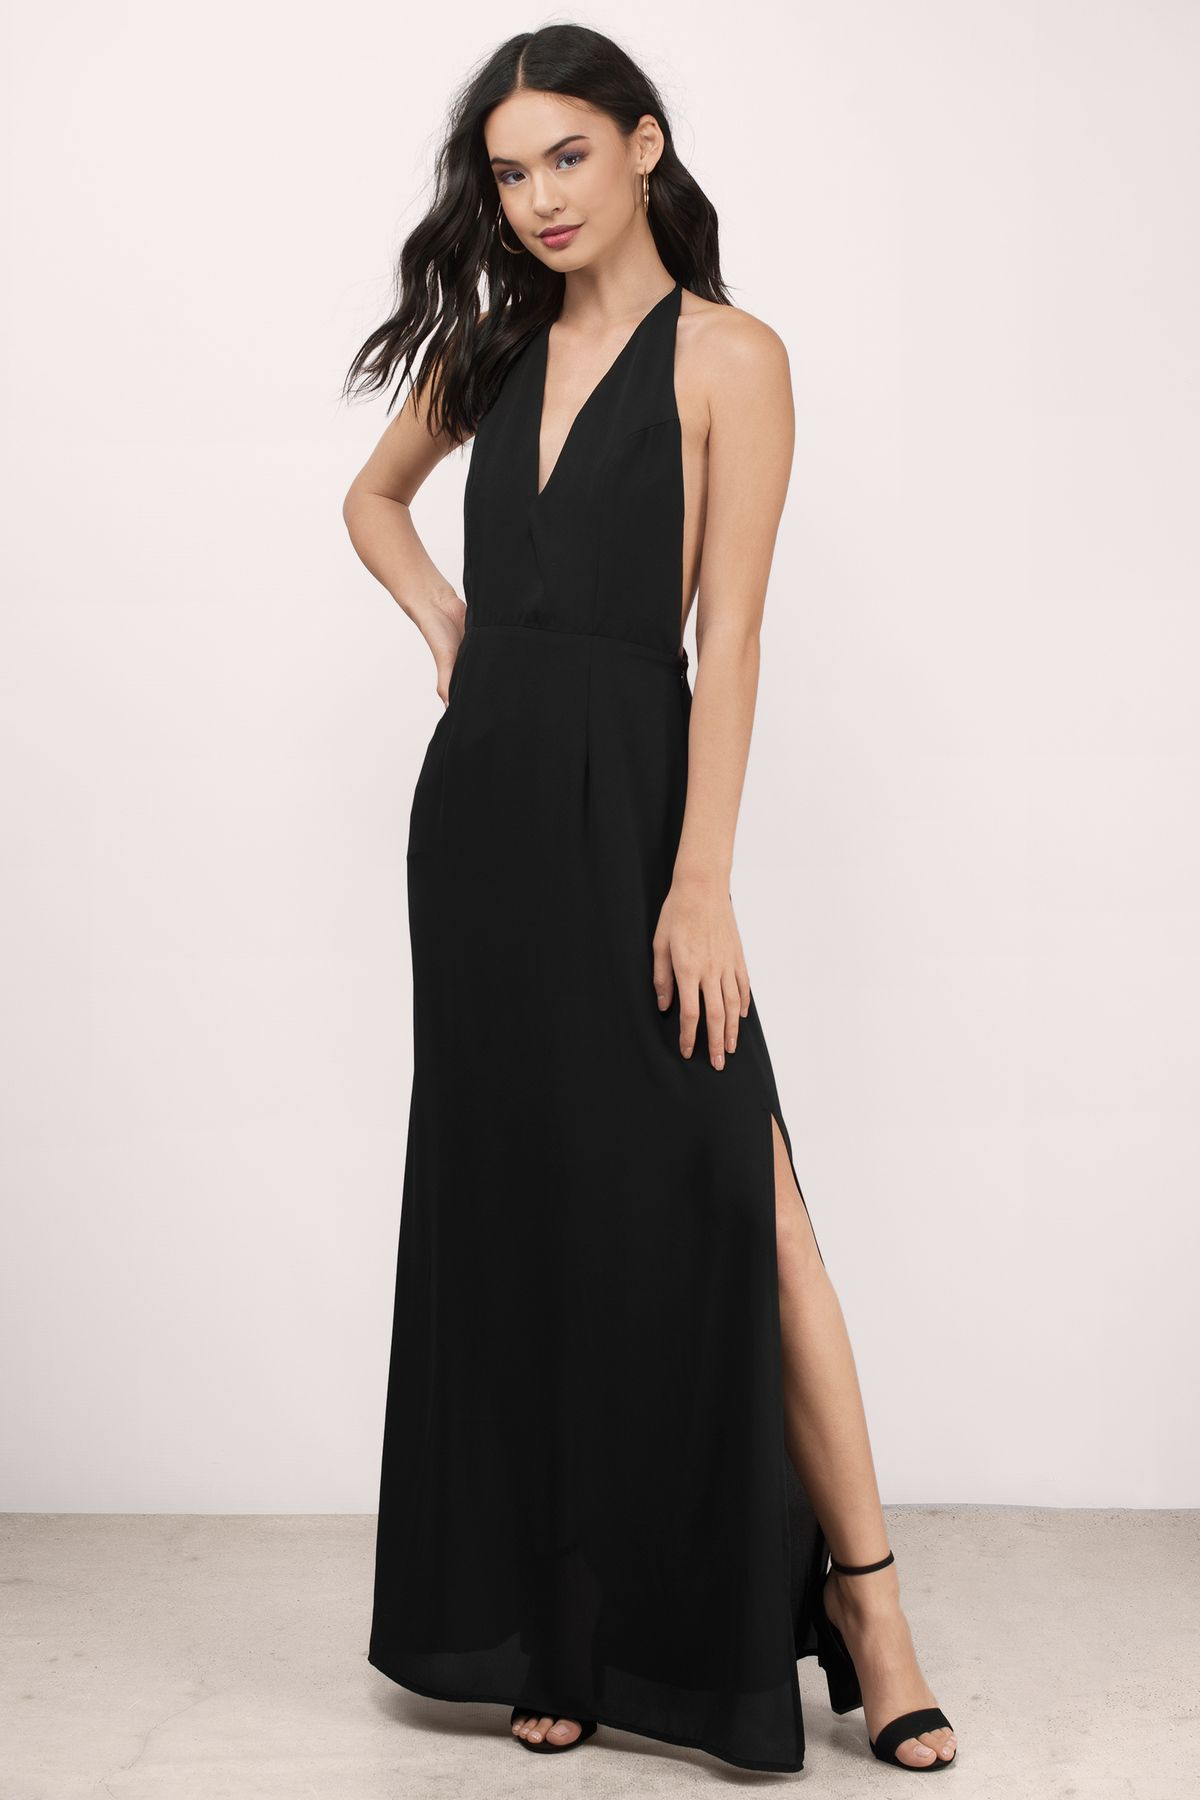 Glow Low Back Maxi Dress | Black tie party, Prom dance and Black maxi